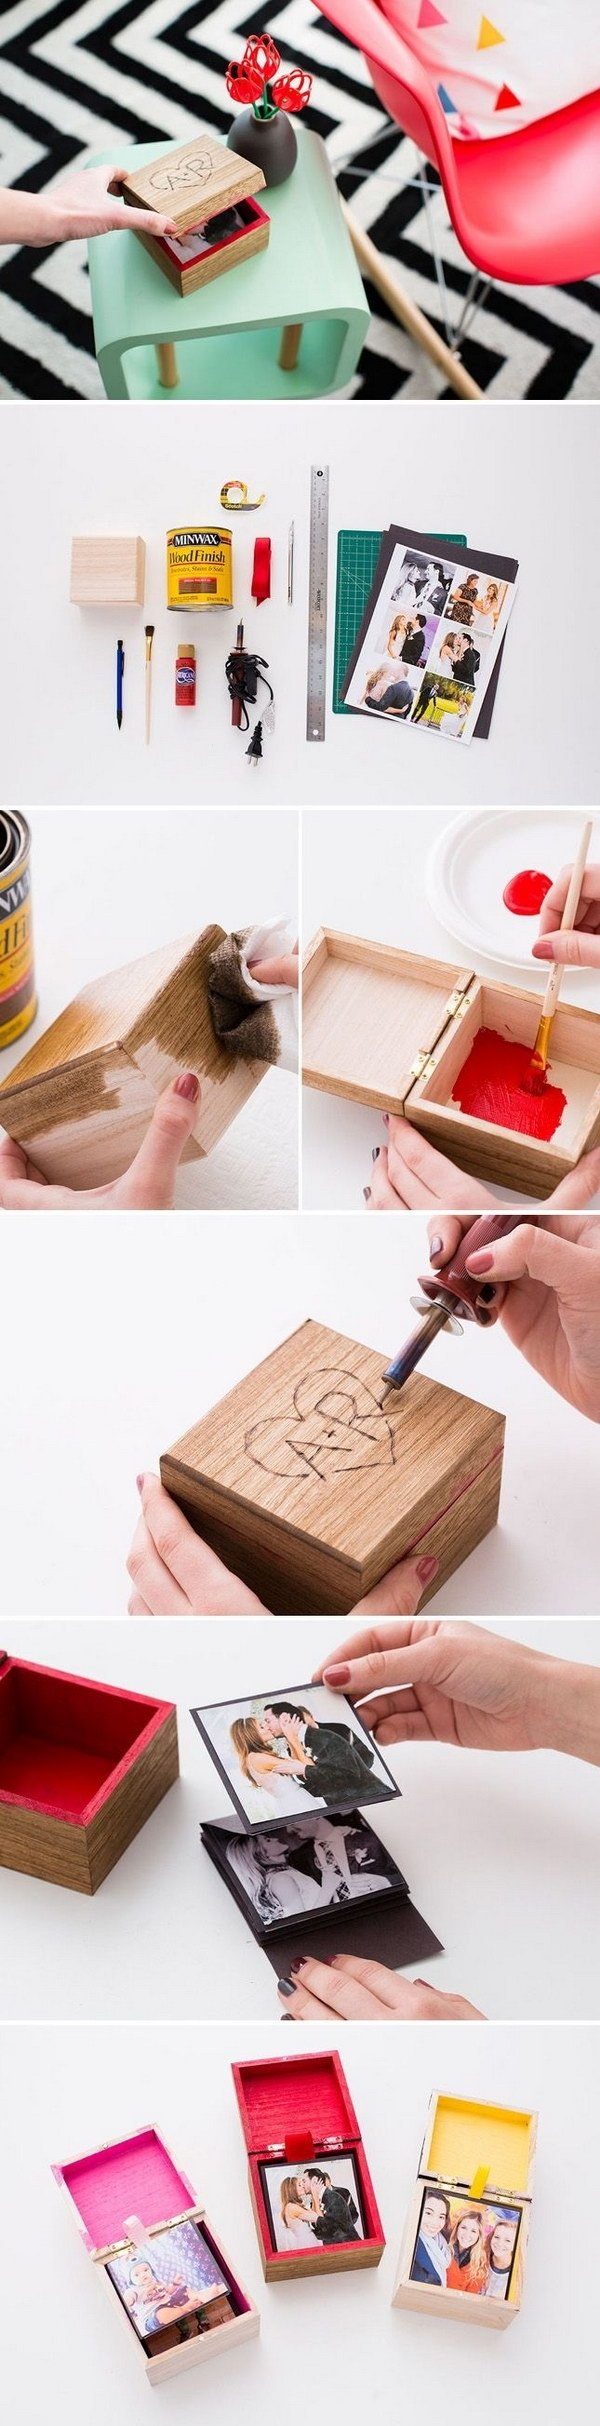 10 Famous Christmas Present Ideas For Boyfriends 25 diy gifts for him with lots of tutorials 2017 8 2021